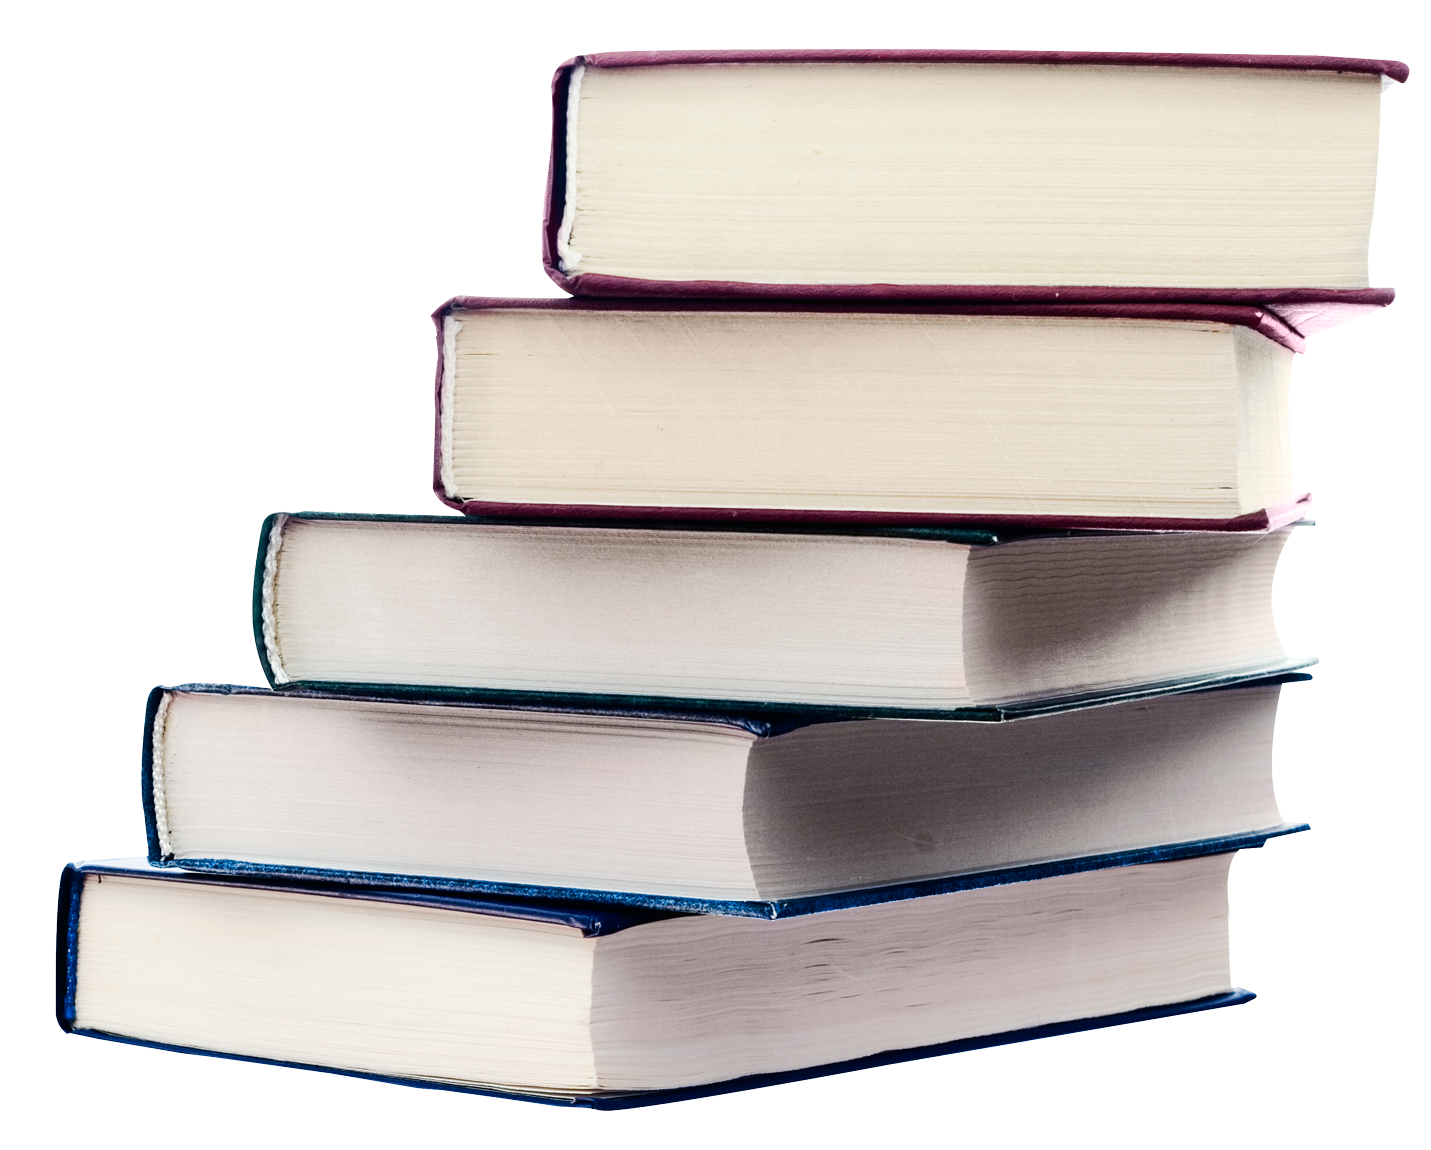 Books PNG Image.